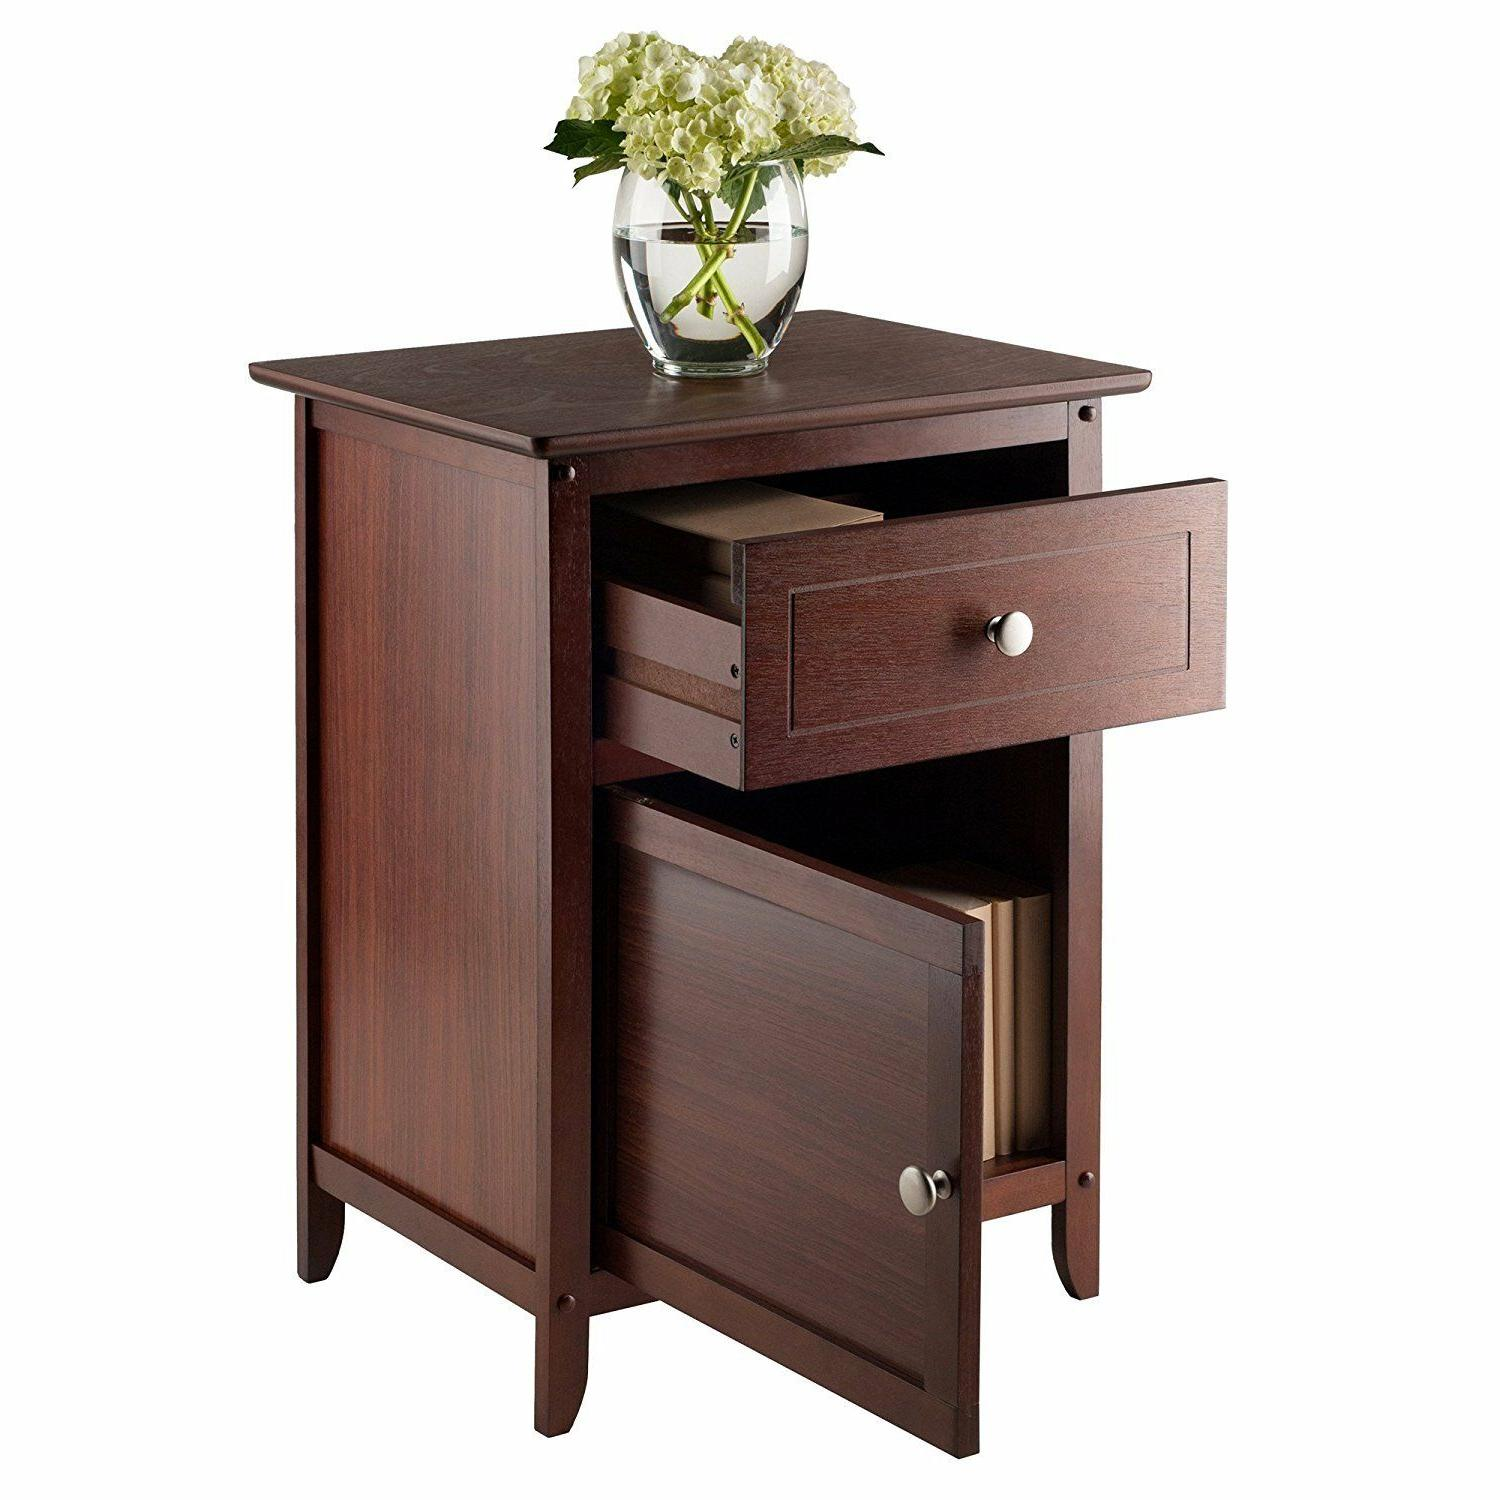 Winsome Stand/Accent Table and Cabinet